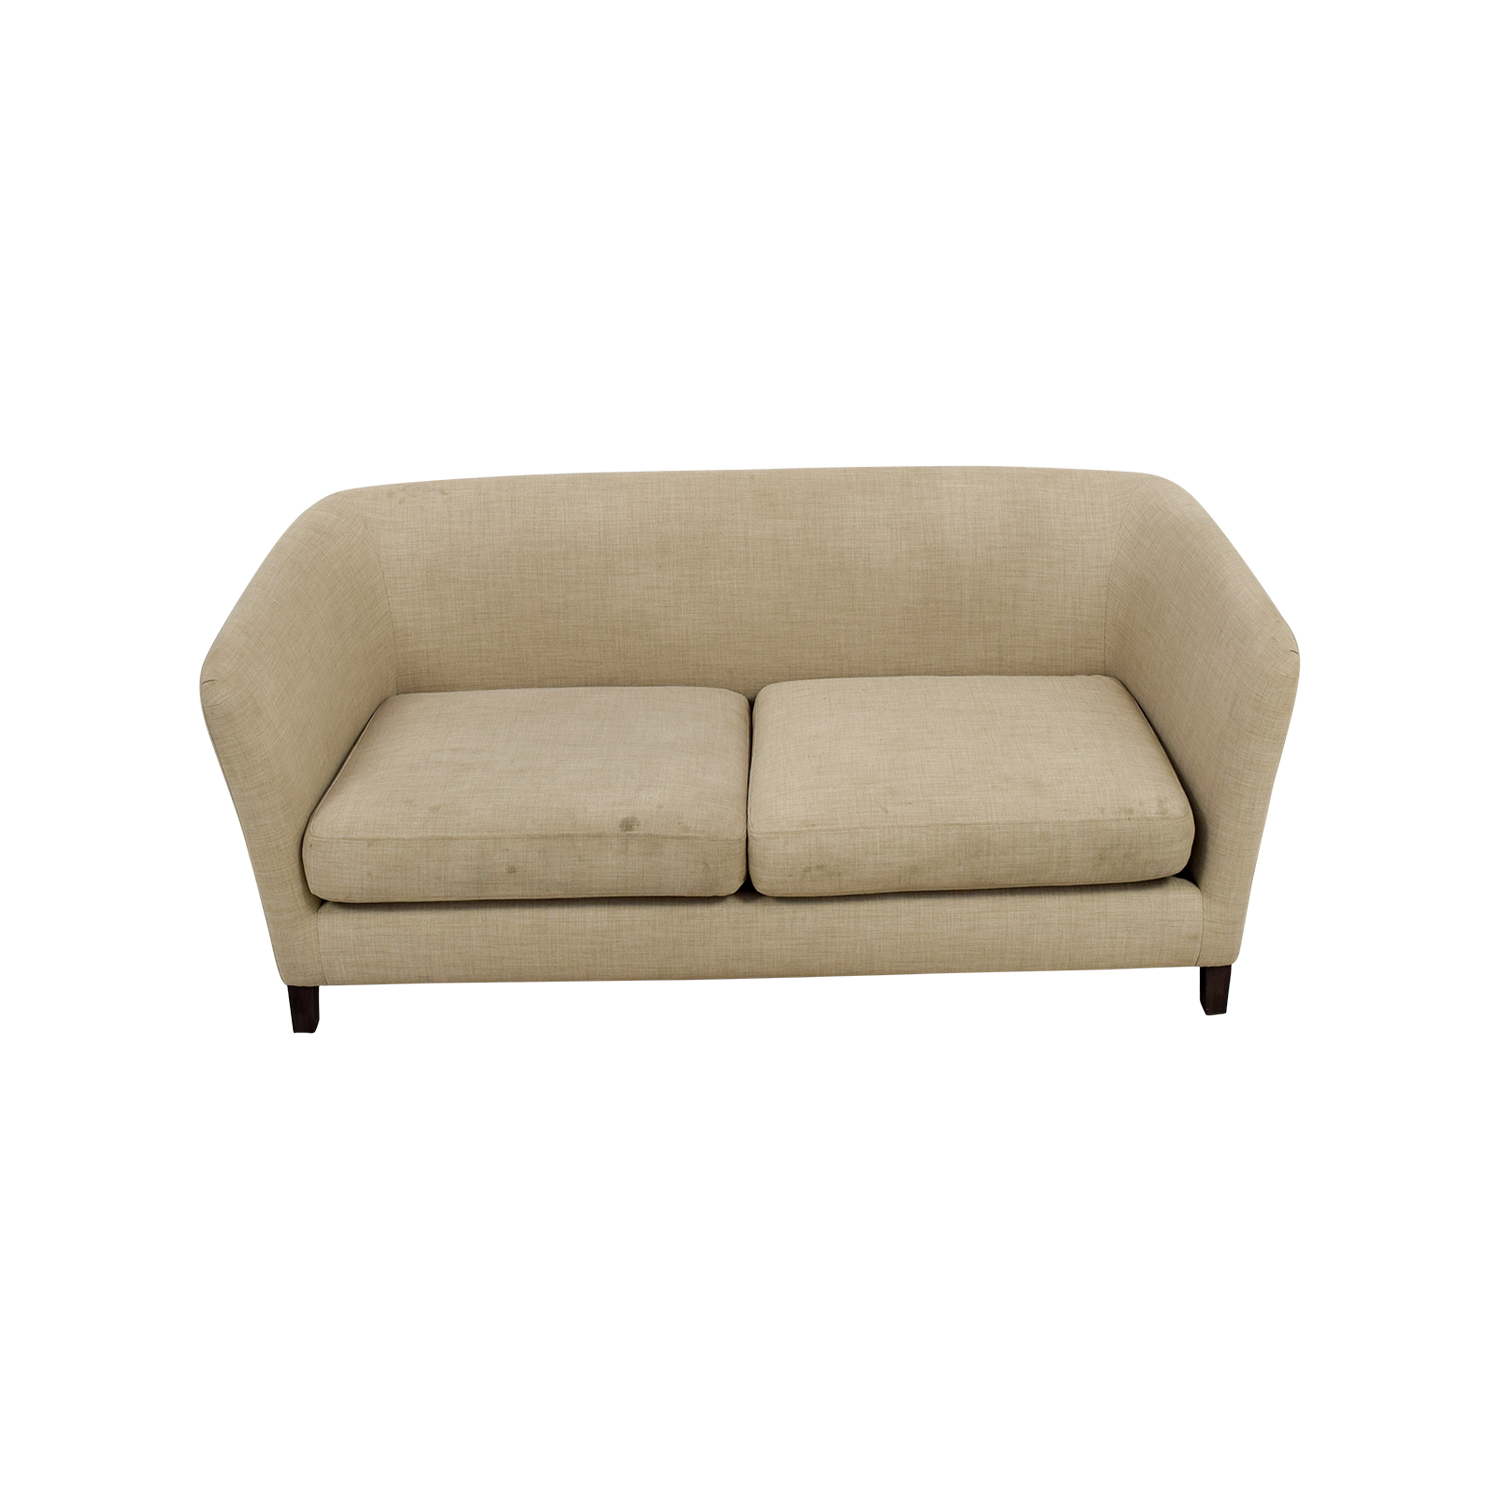 buy Pottery Barn Two-Seater Sofa Pottery Barn Sofas